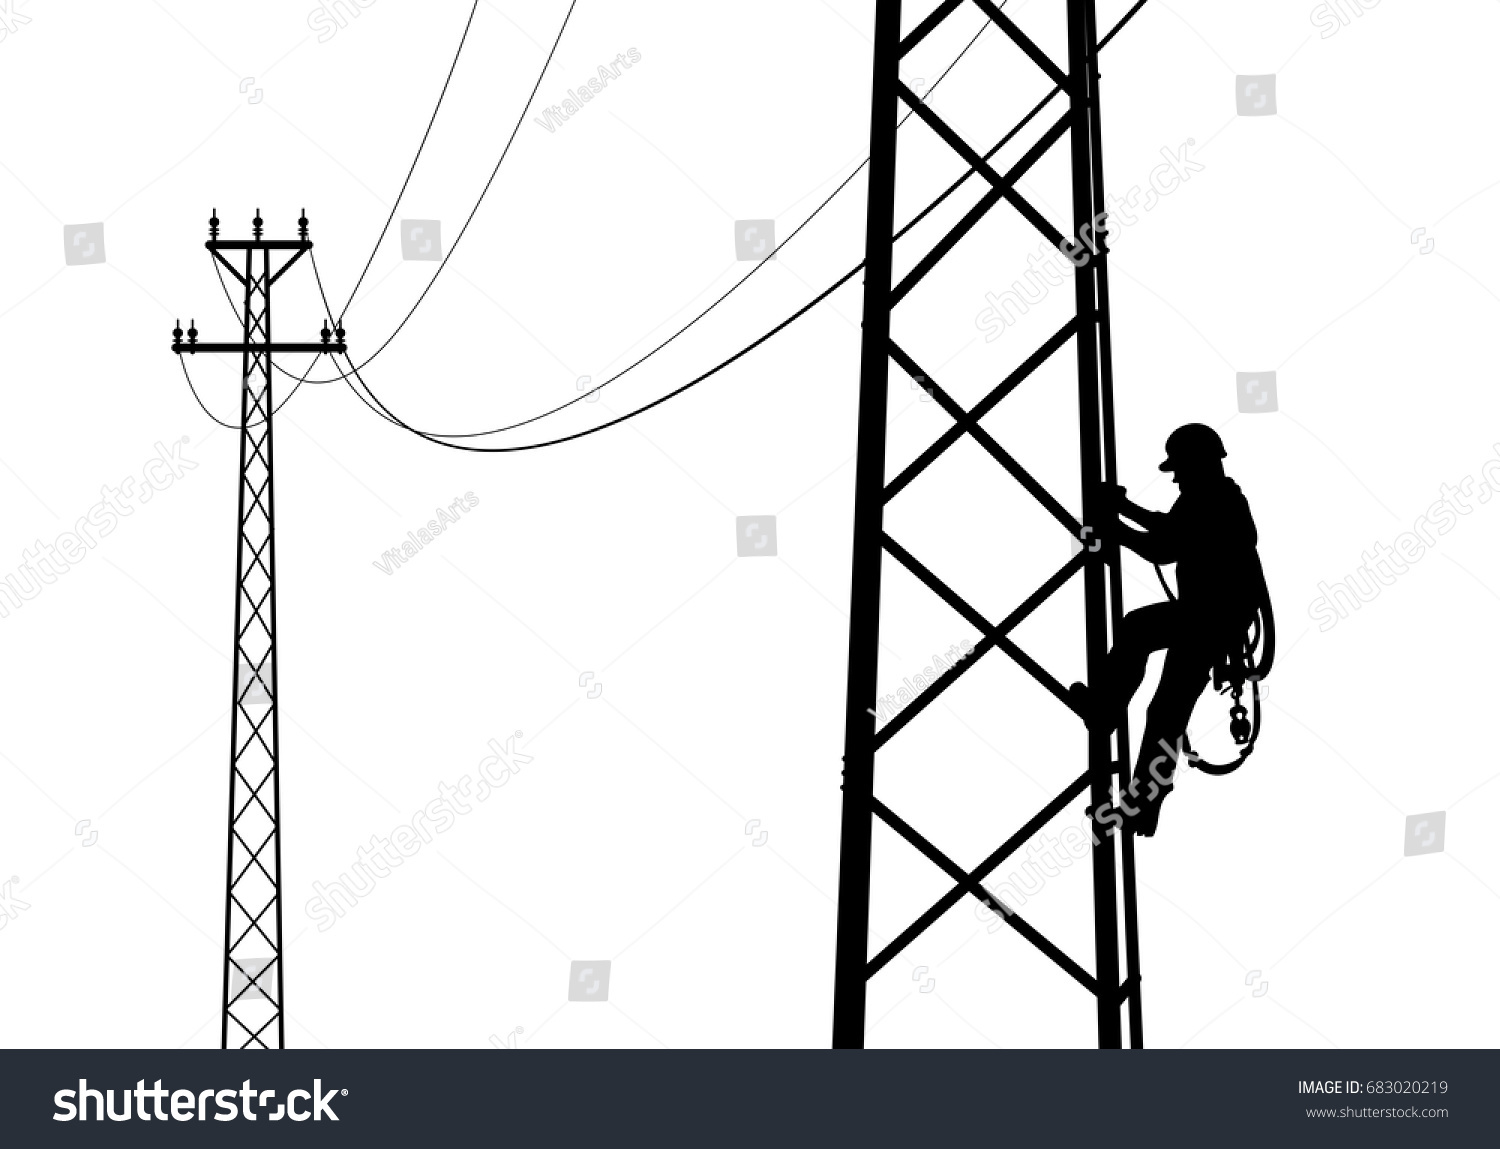 Electrician Climbing Tower Against Sunset Black Stock Vector Royalty Free 683020219